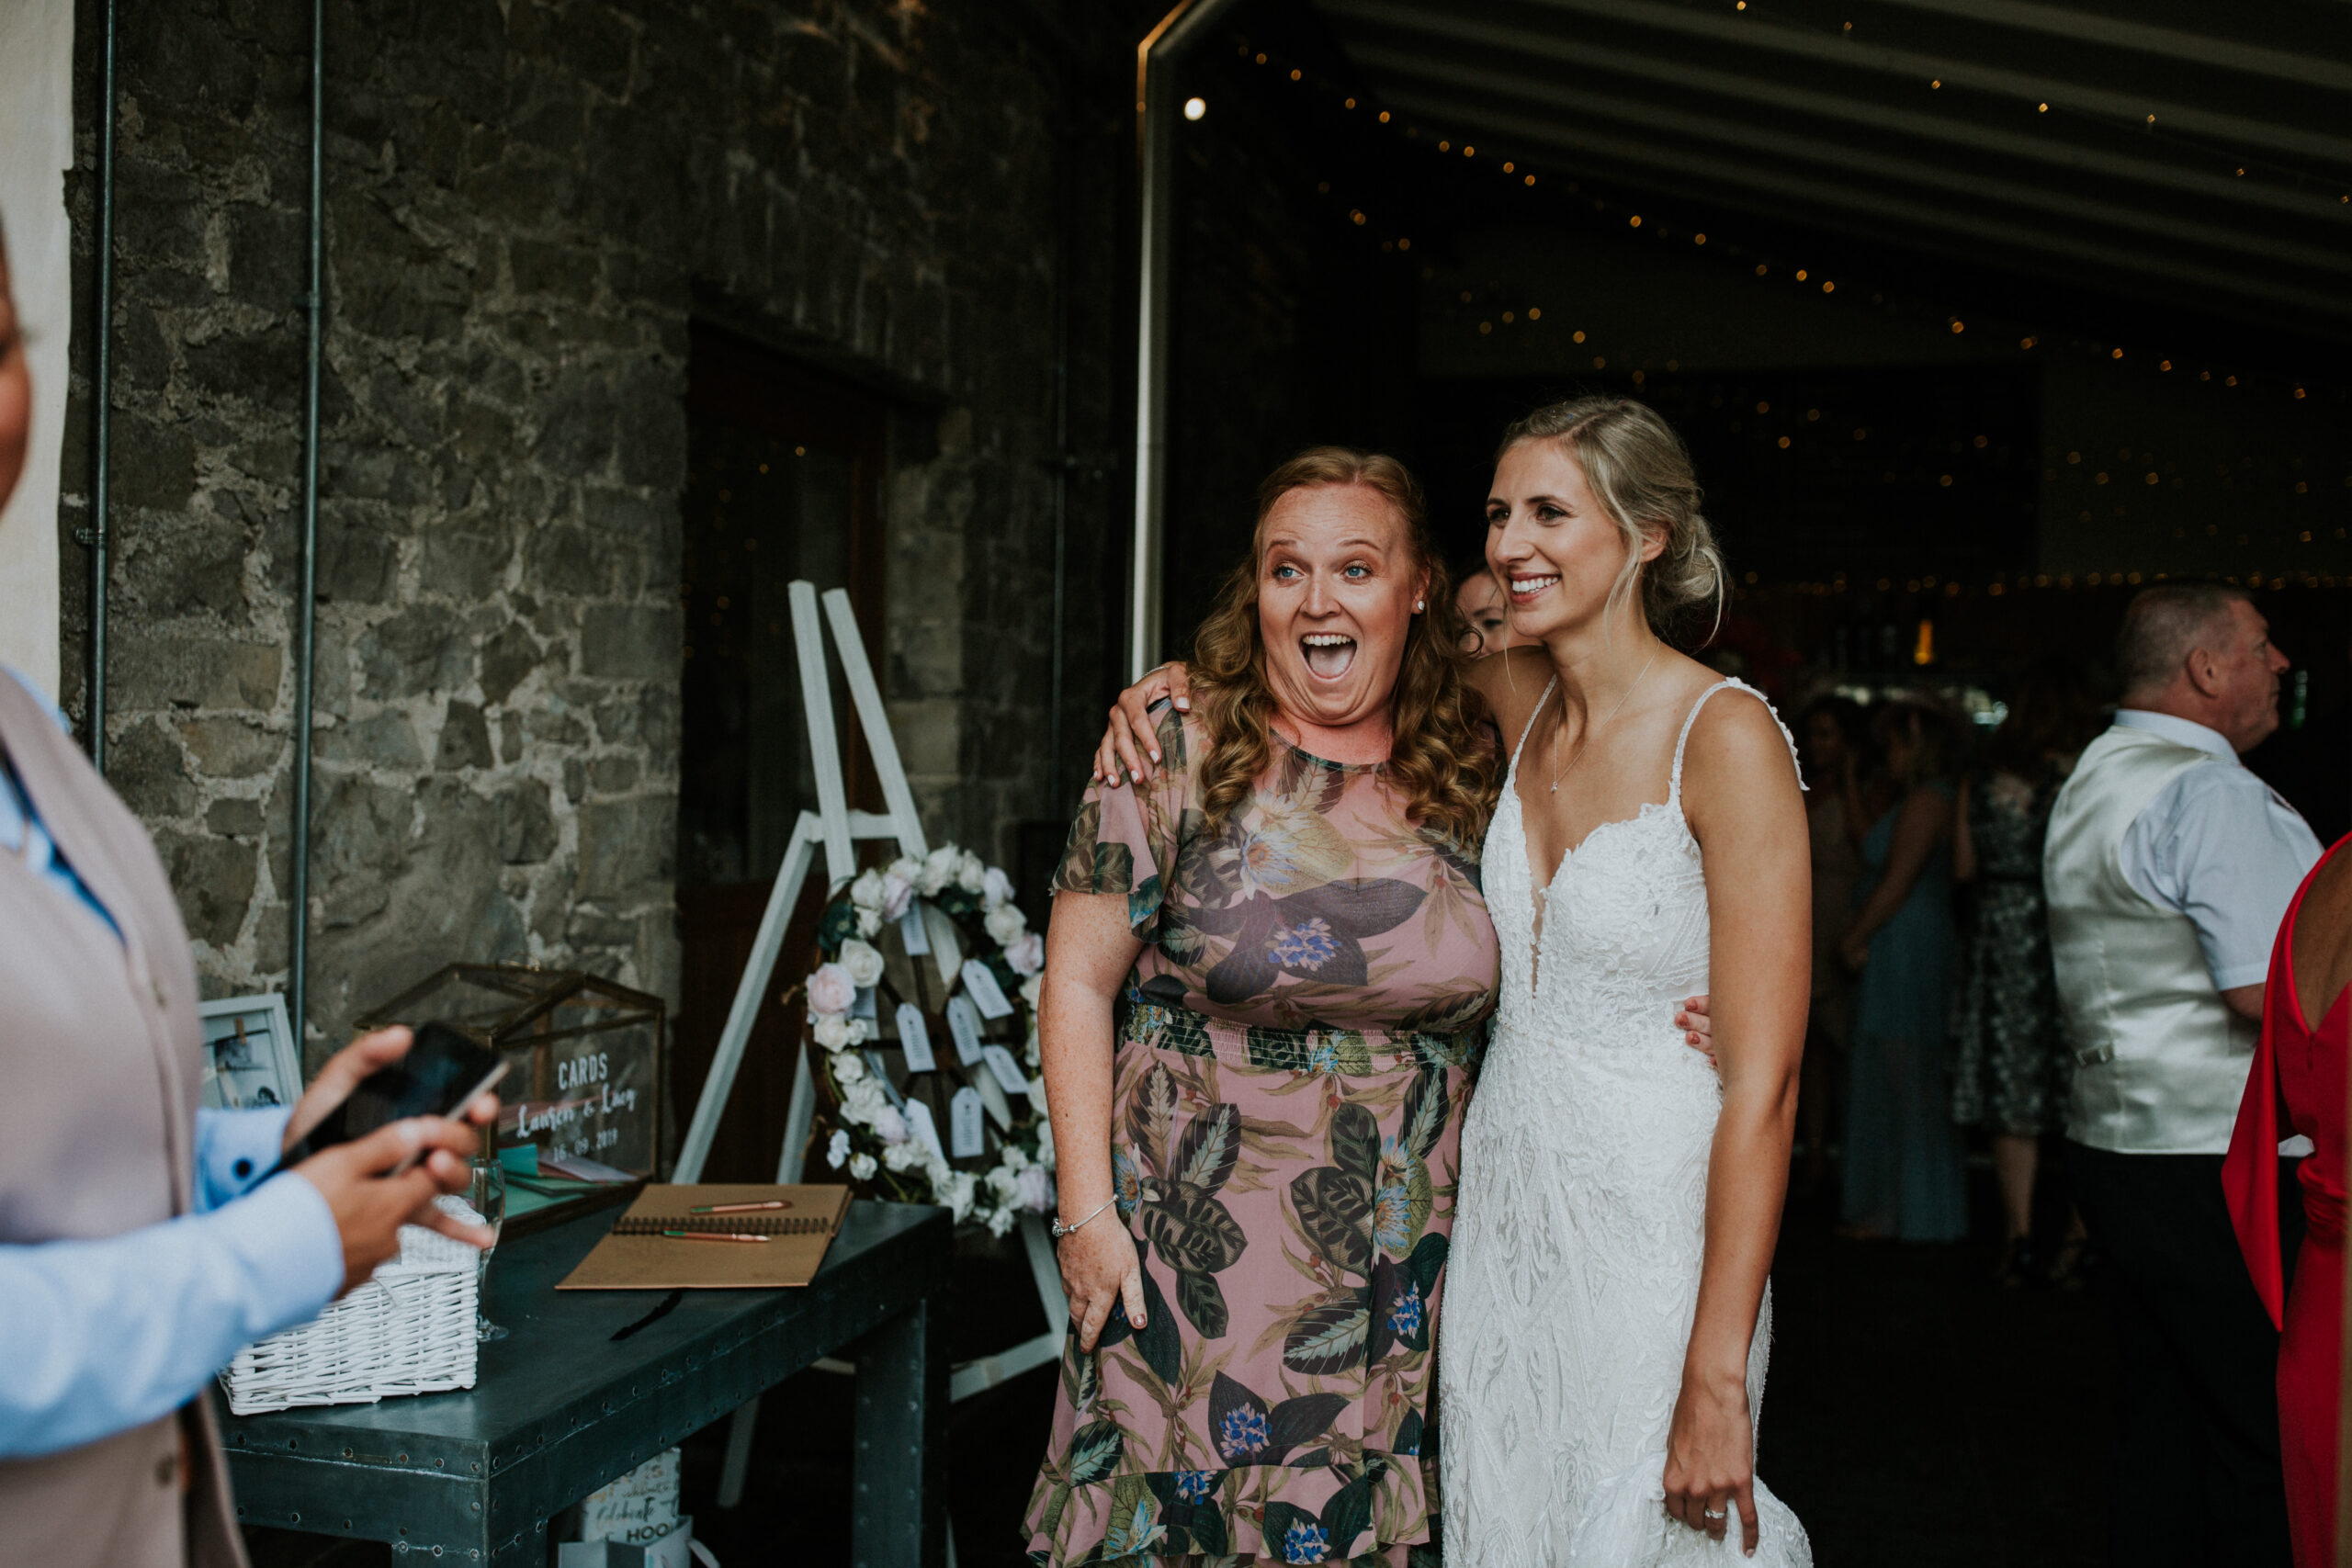 bride and her guest smiling